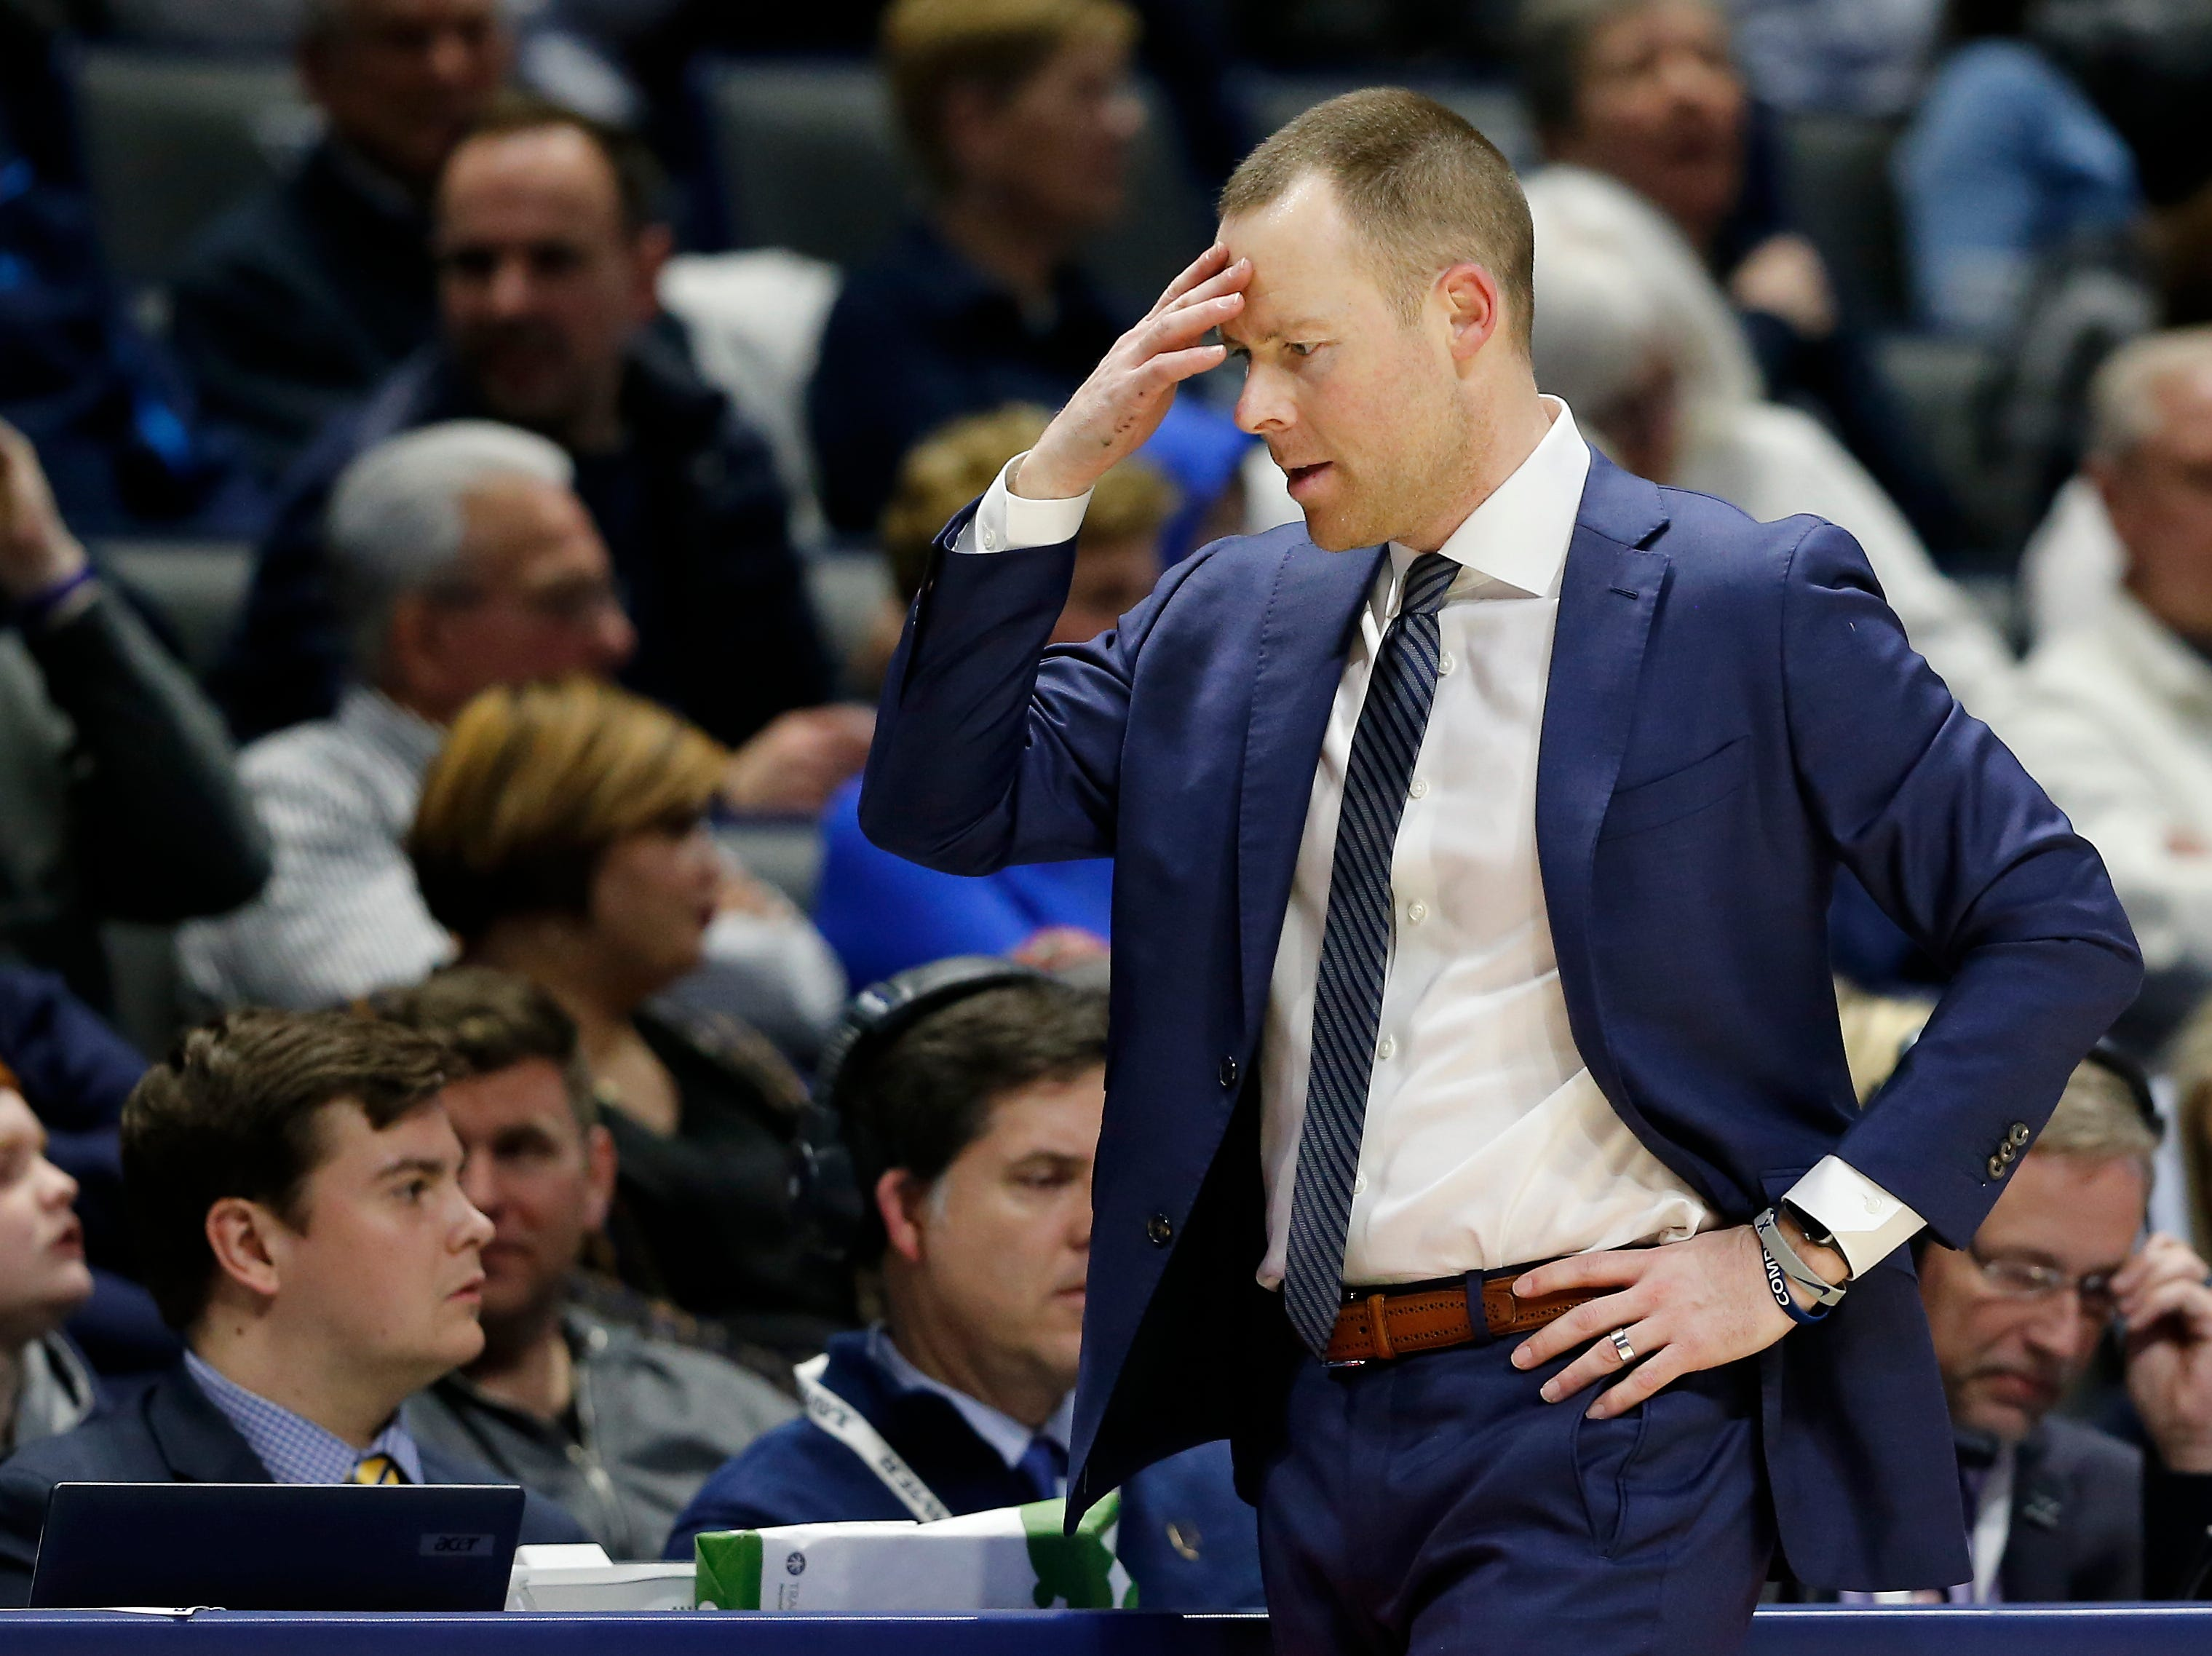 Xavier Musketeers head coach Travis Steele shakes his heads in the second half of the NCAA Big East Conference game between the Xavier Musketeers and the DePaul Blue Demons at the Cintas Center in Cincinnati on Saturday, Feb. 9, 2019. Xavier lost its sixth game in a row, 74-62.